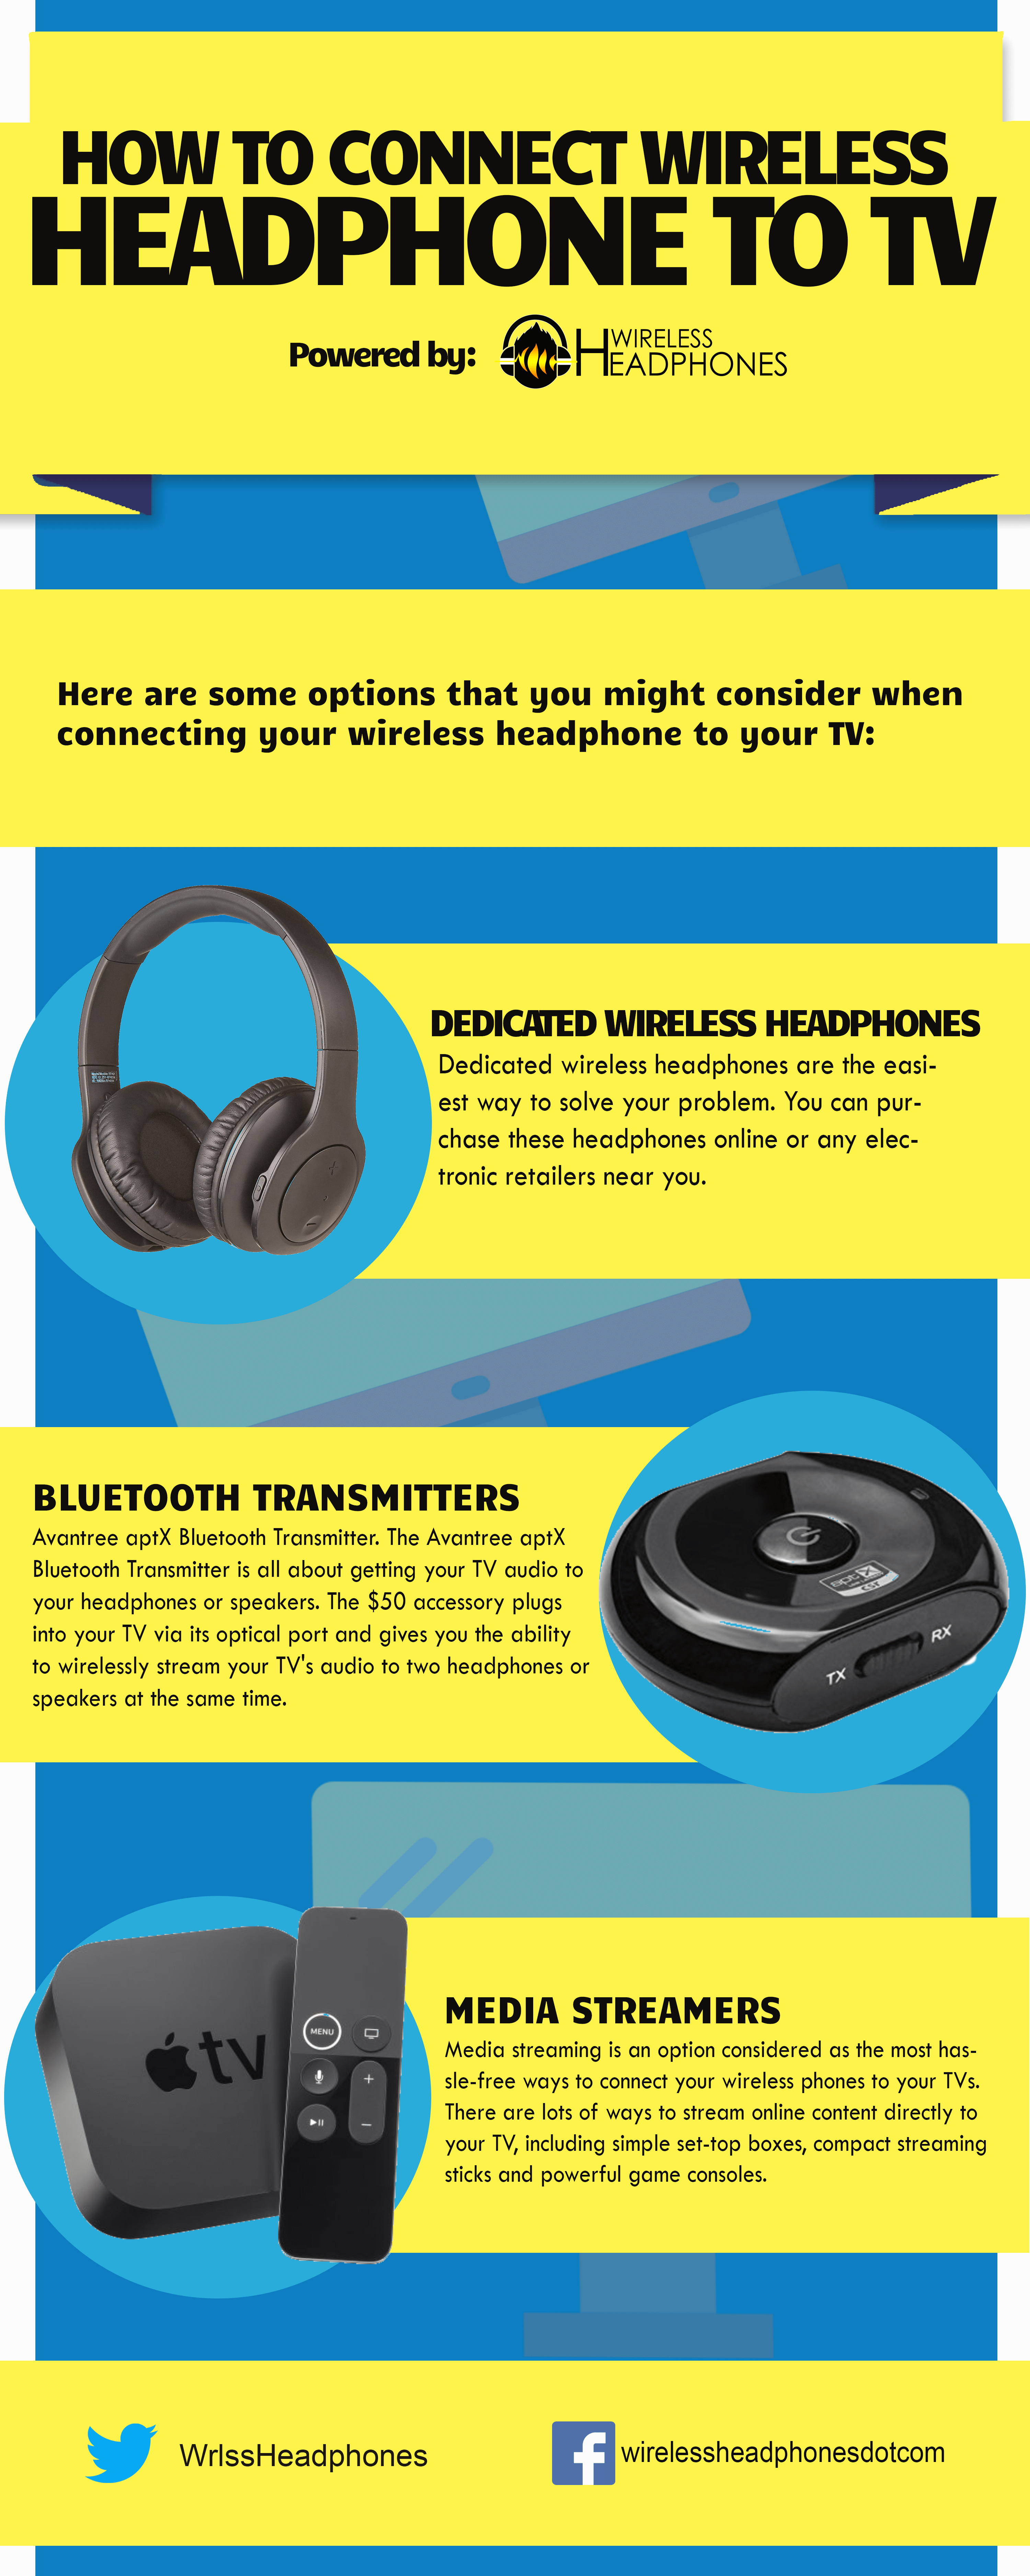 How To Connect Wireless Headphone To Tv Wireless Headphones Headphone Wireless